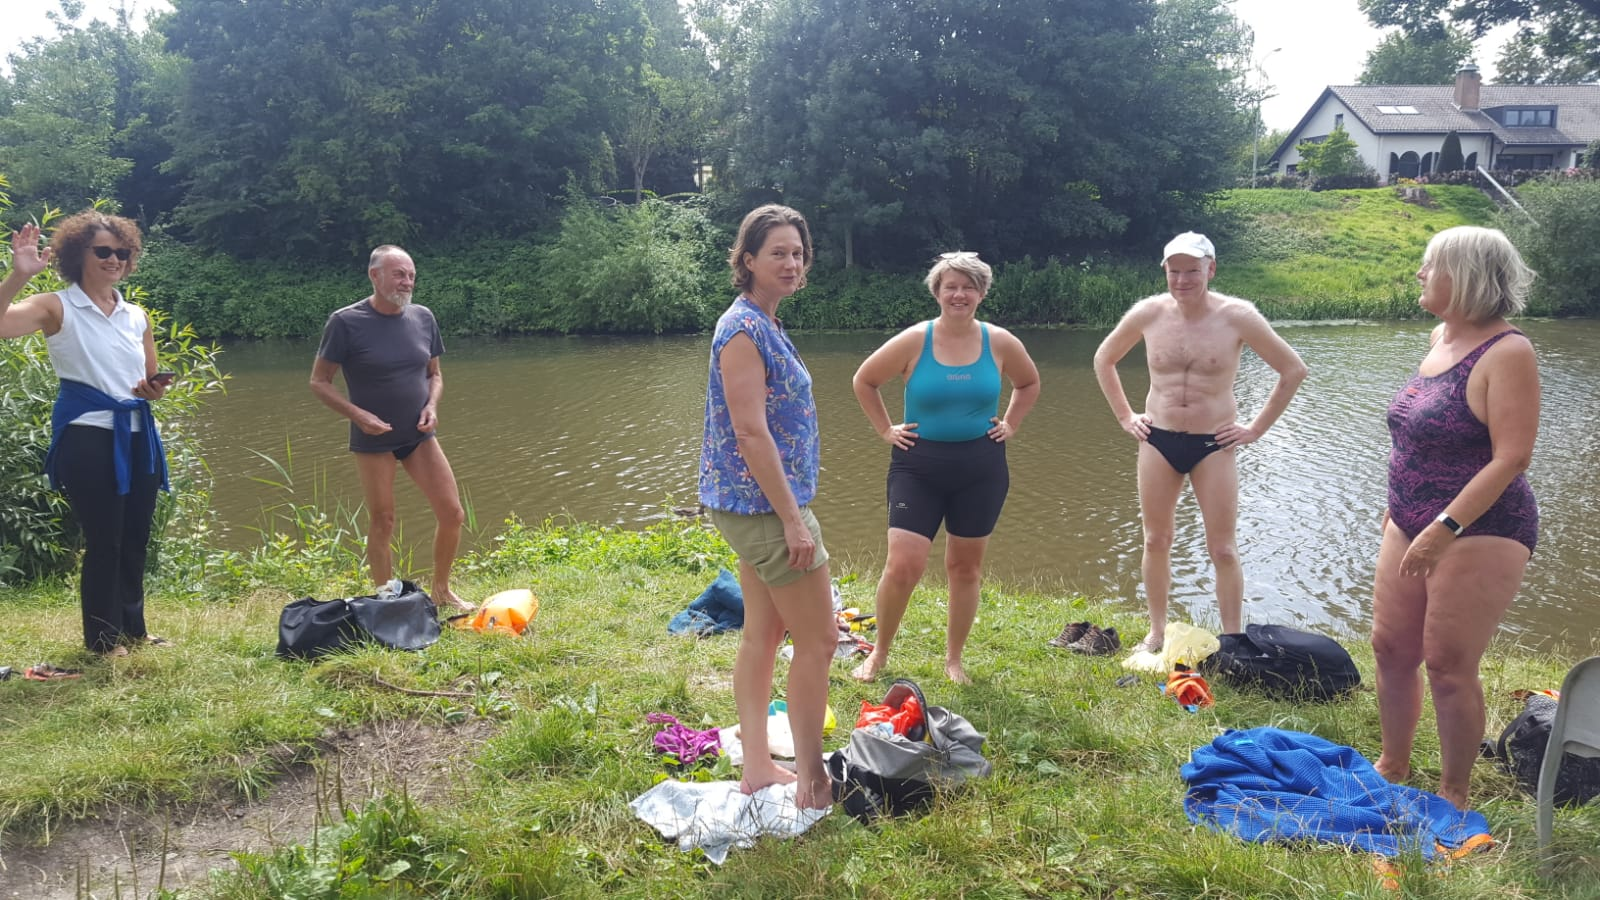 22 juli 2020 - Slow Linge triathlon # 04